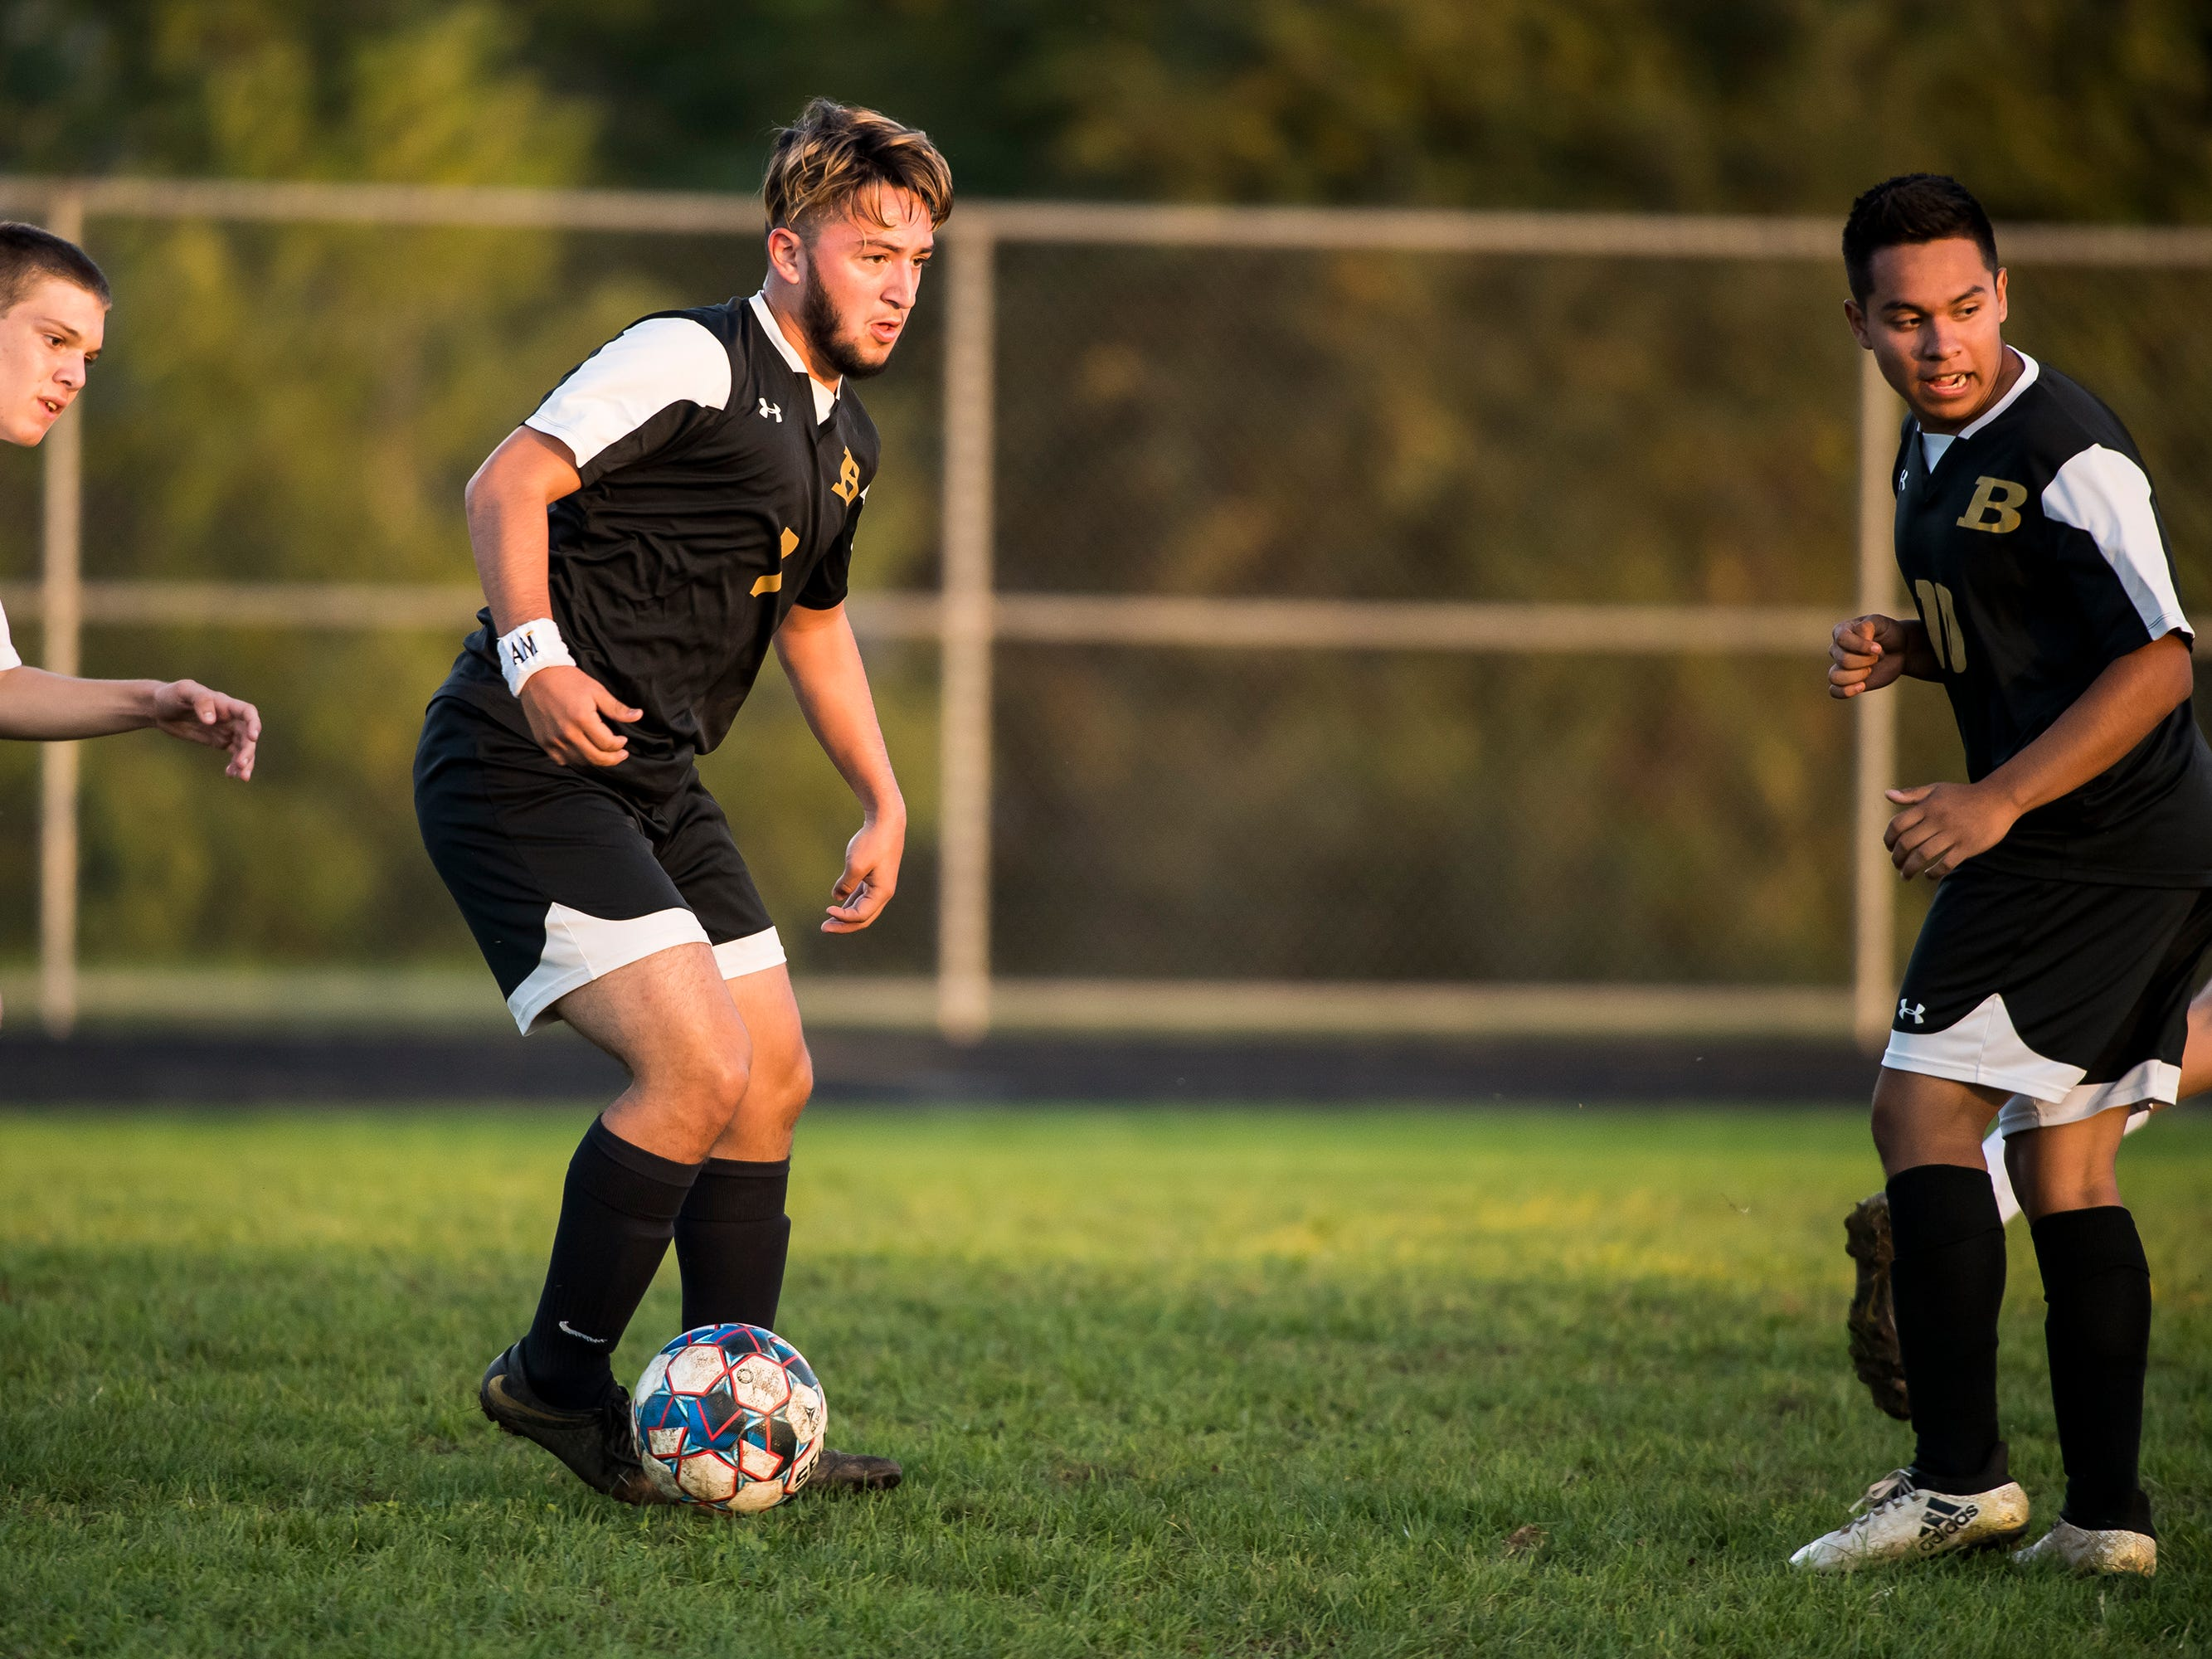 Biglerville's Esteban Alvarez Jr. looks to pass the ball during play against Delone Catholic on Wednesday, October 3, 2018. The Canners won 3-0.